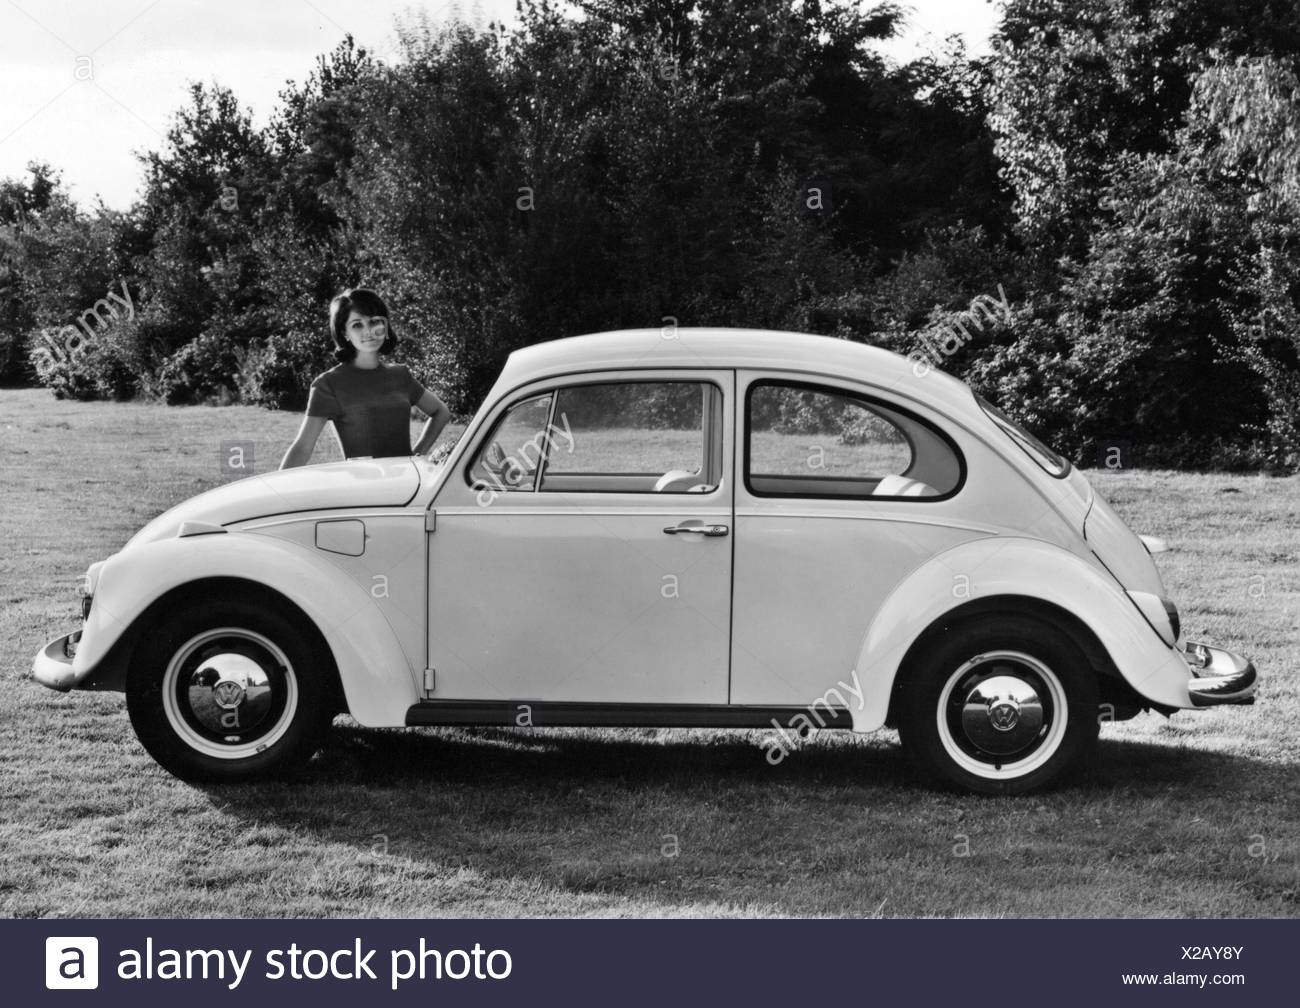 transport / transportation, car, vehicle variants, Volkswagen, VW 1200 beetle, side view, 1968, Additional-Rights-Clearences-NA Stock Photo